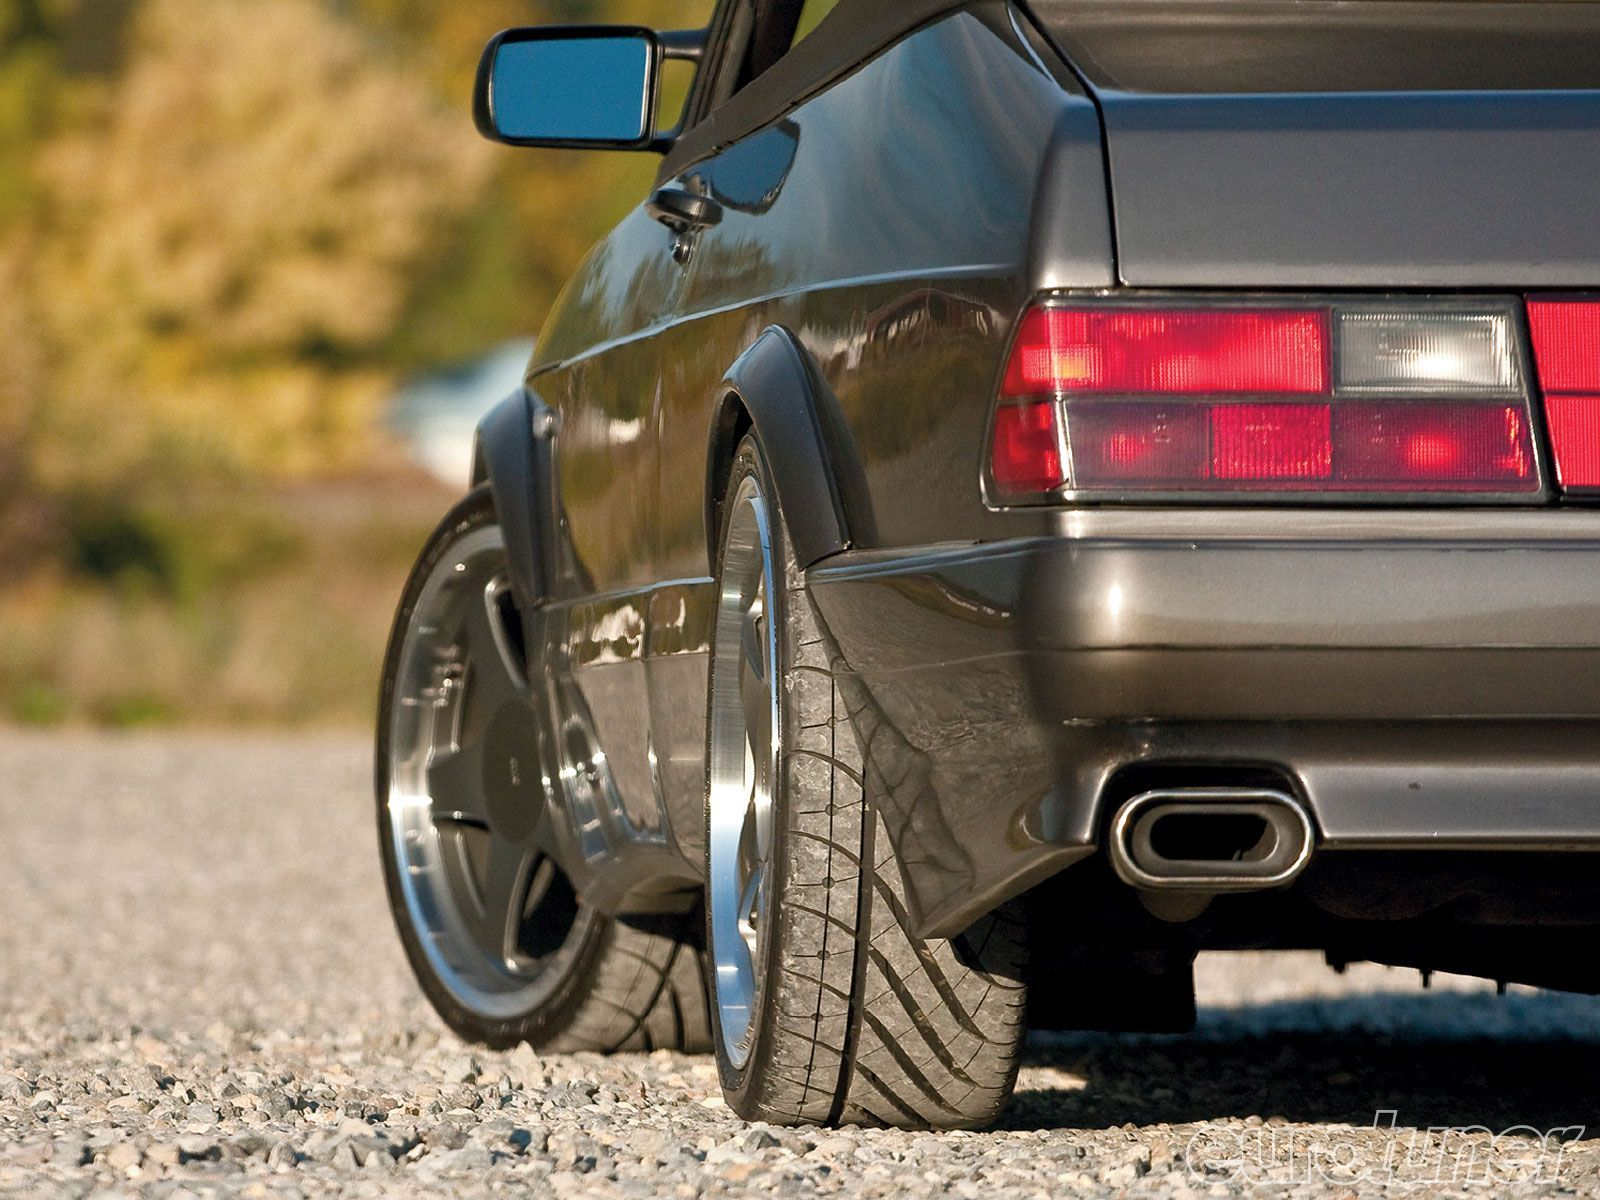 1987 Saab 900 Turbo 335 Wheel Horsepower Eurotuner Magazine